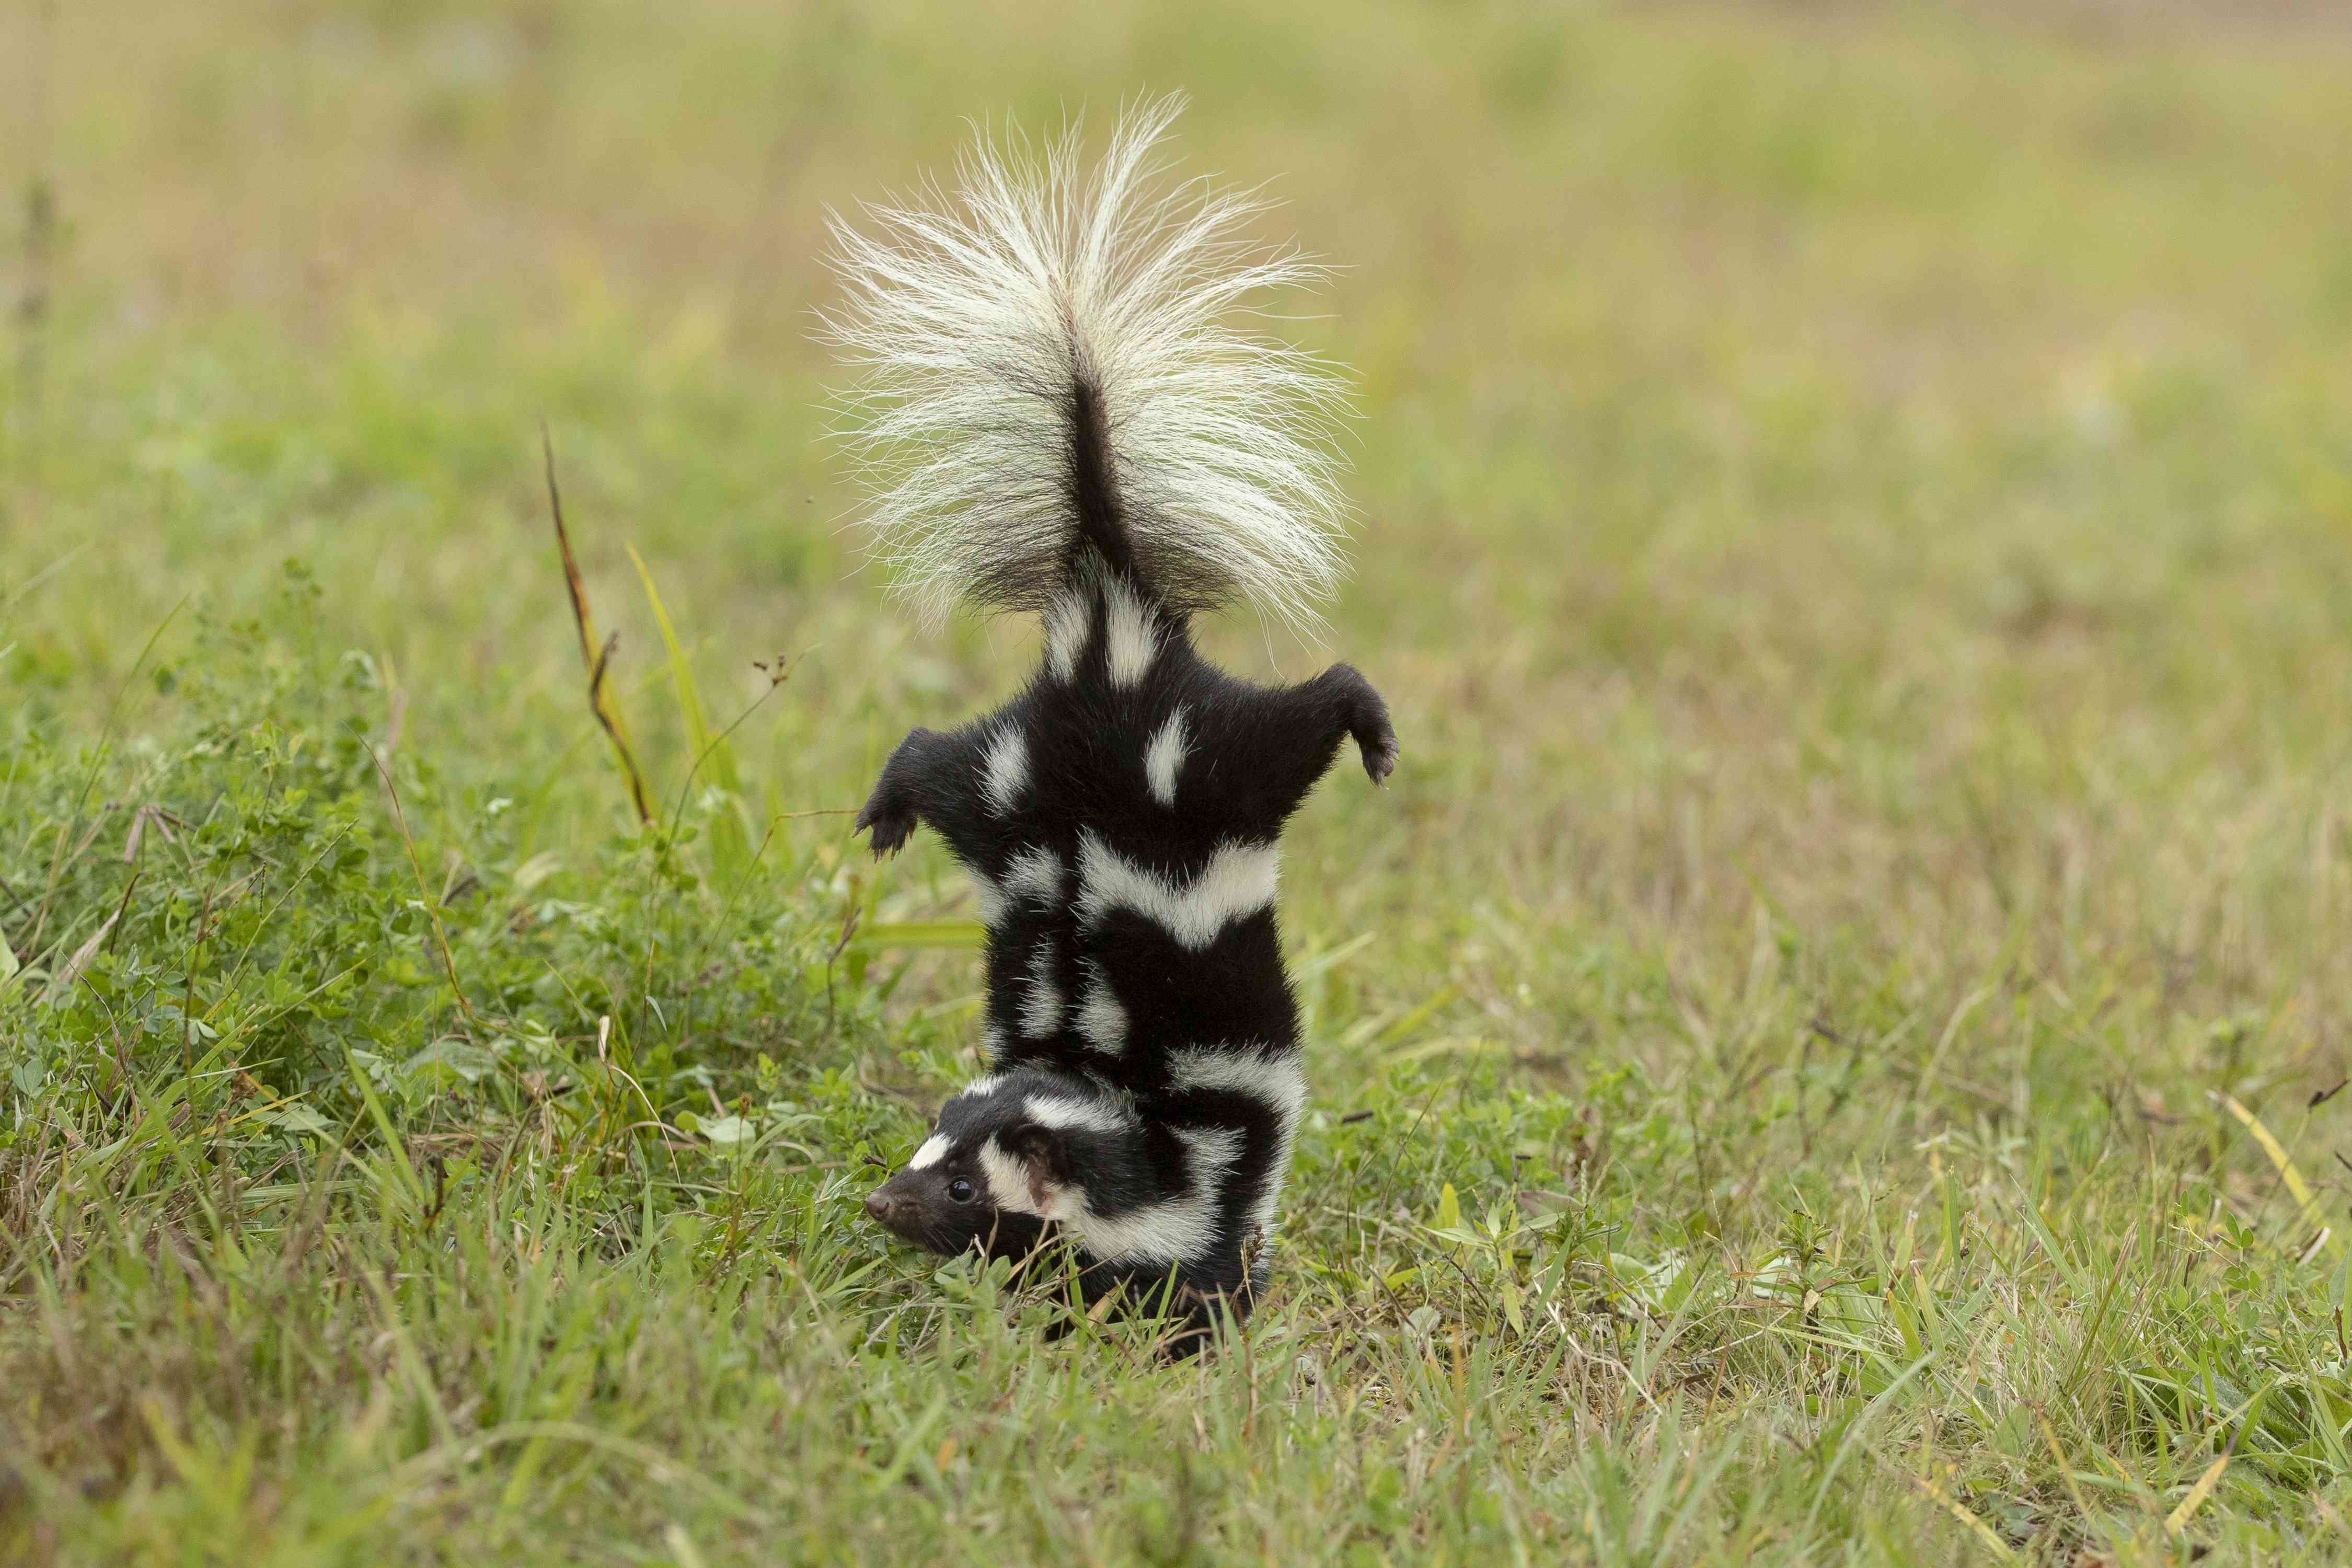 Eastern Spotted Skunk doing handstand before spraying